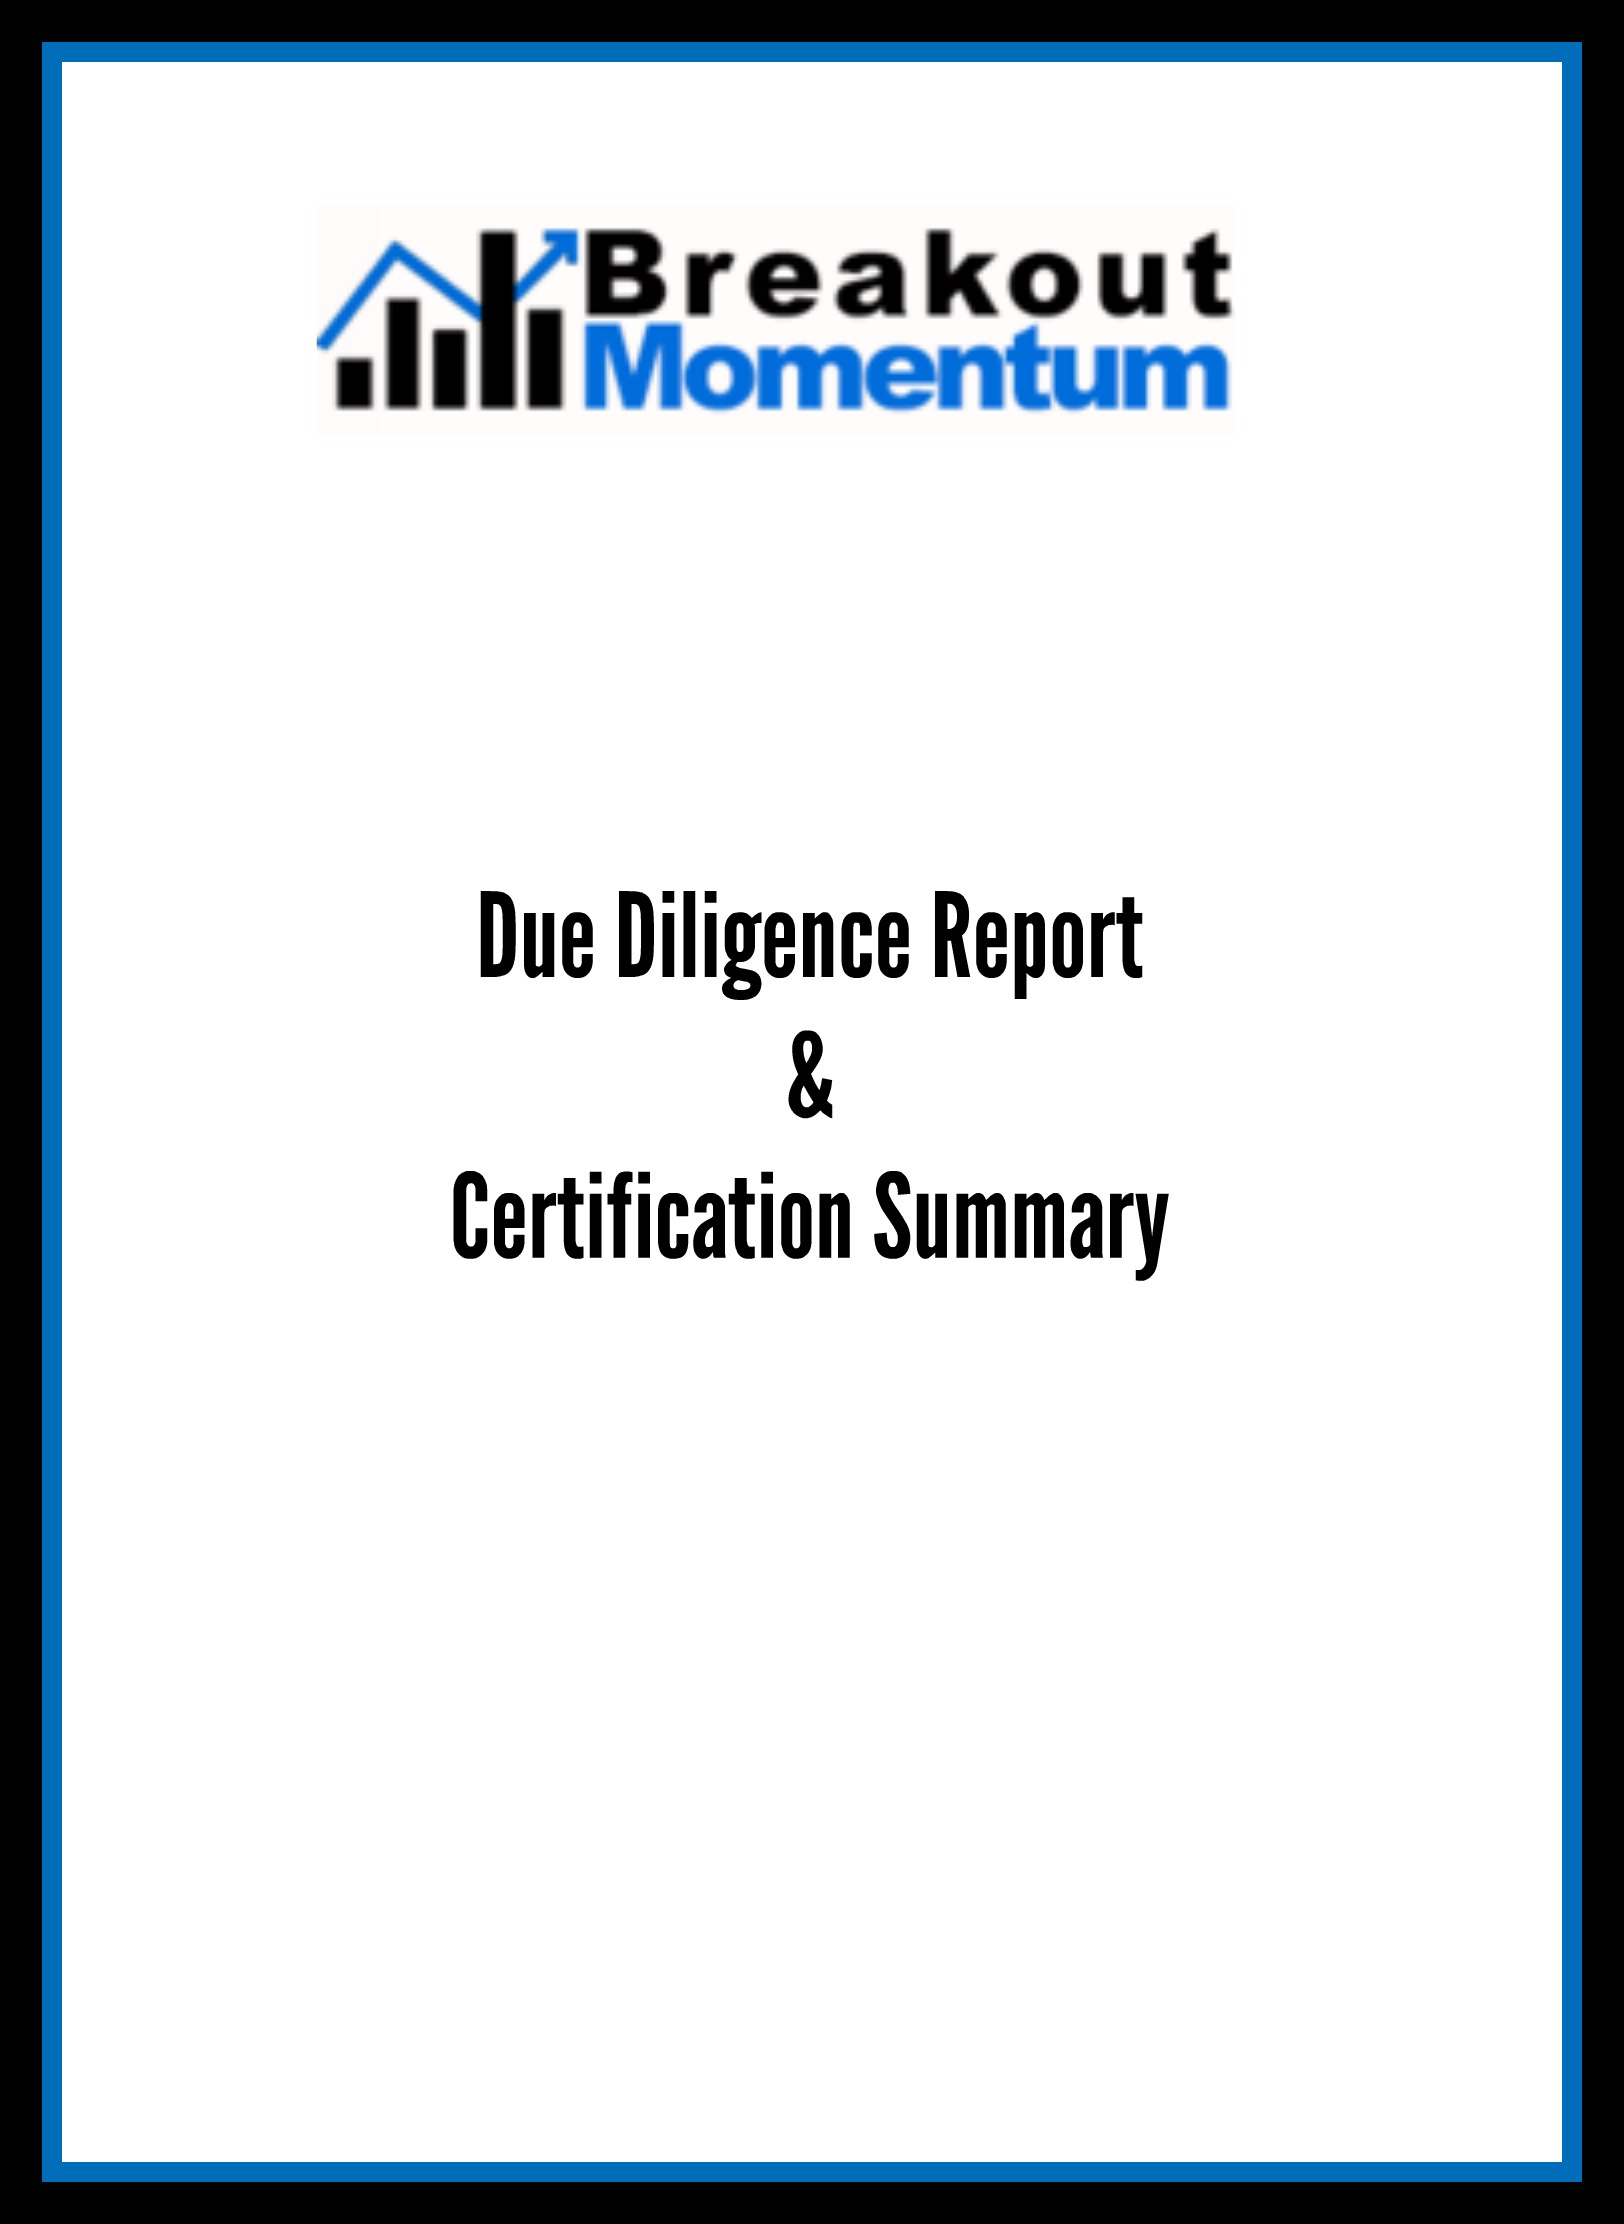 Breakout Momentum Due Diligence Report